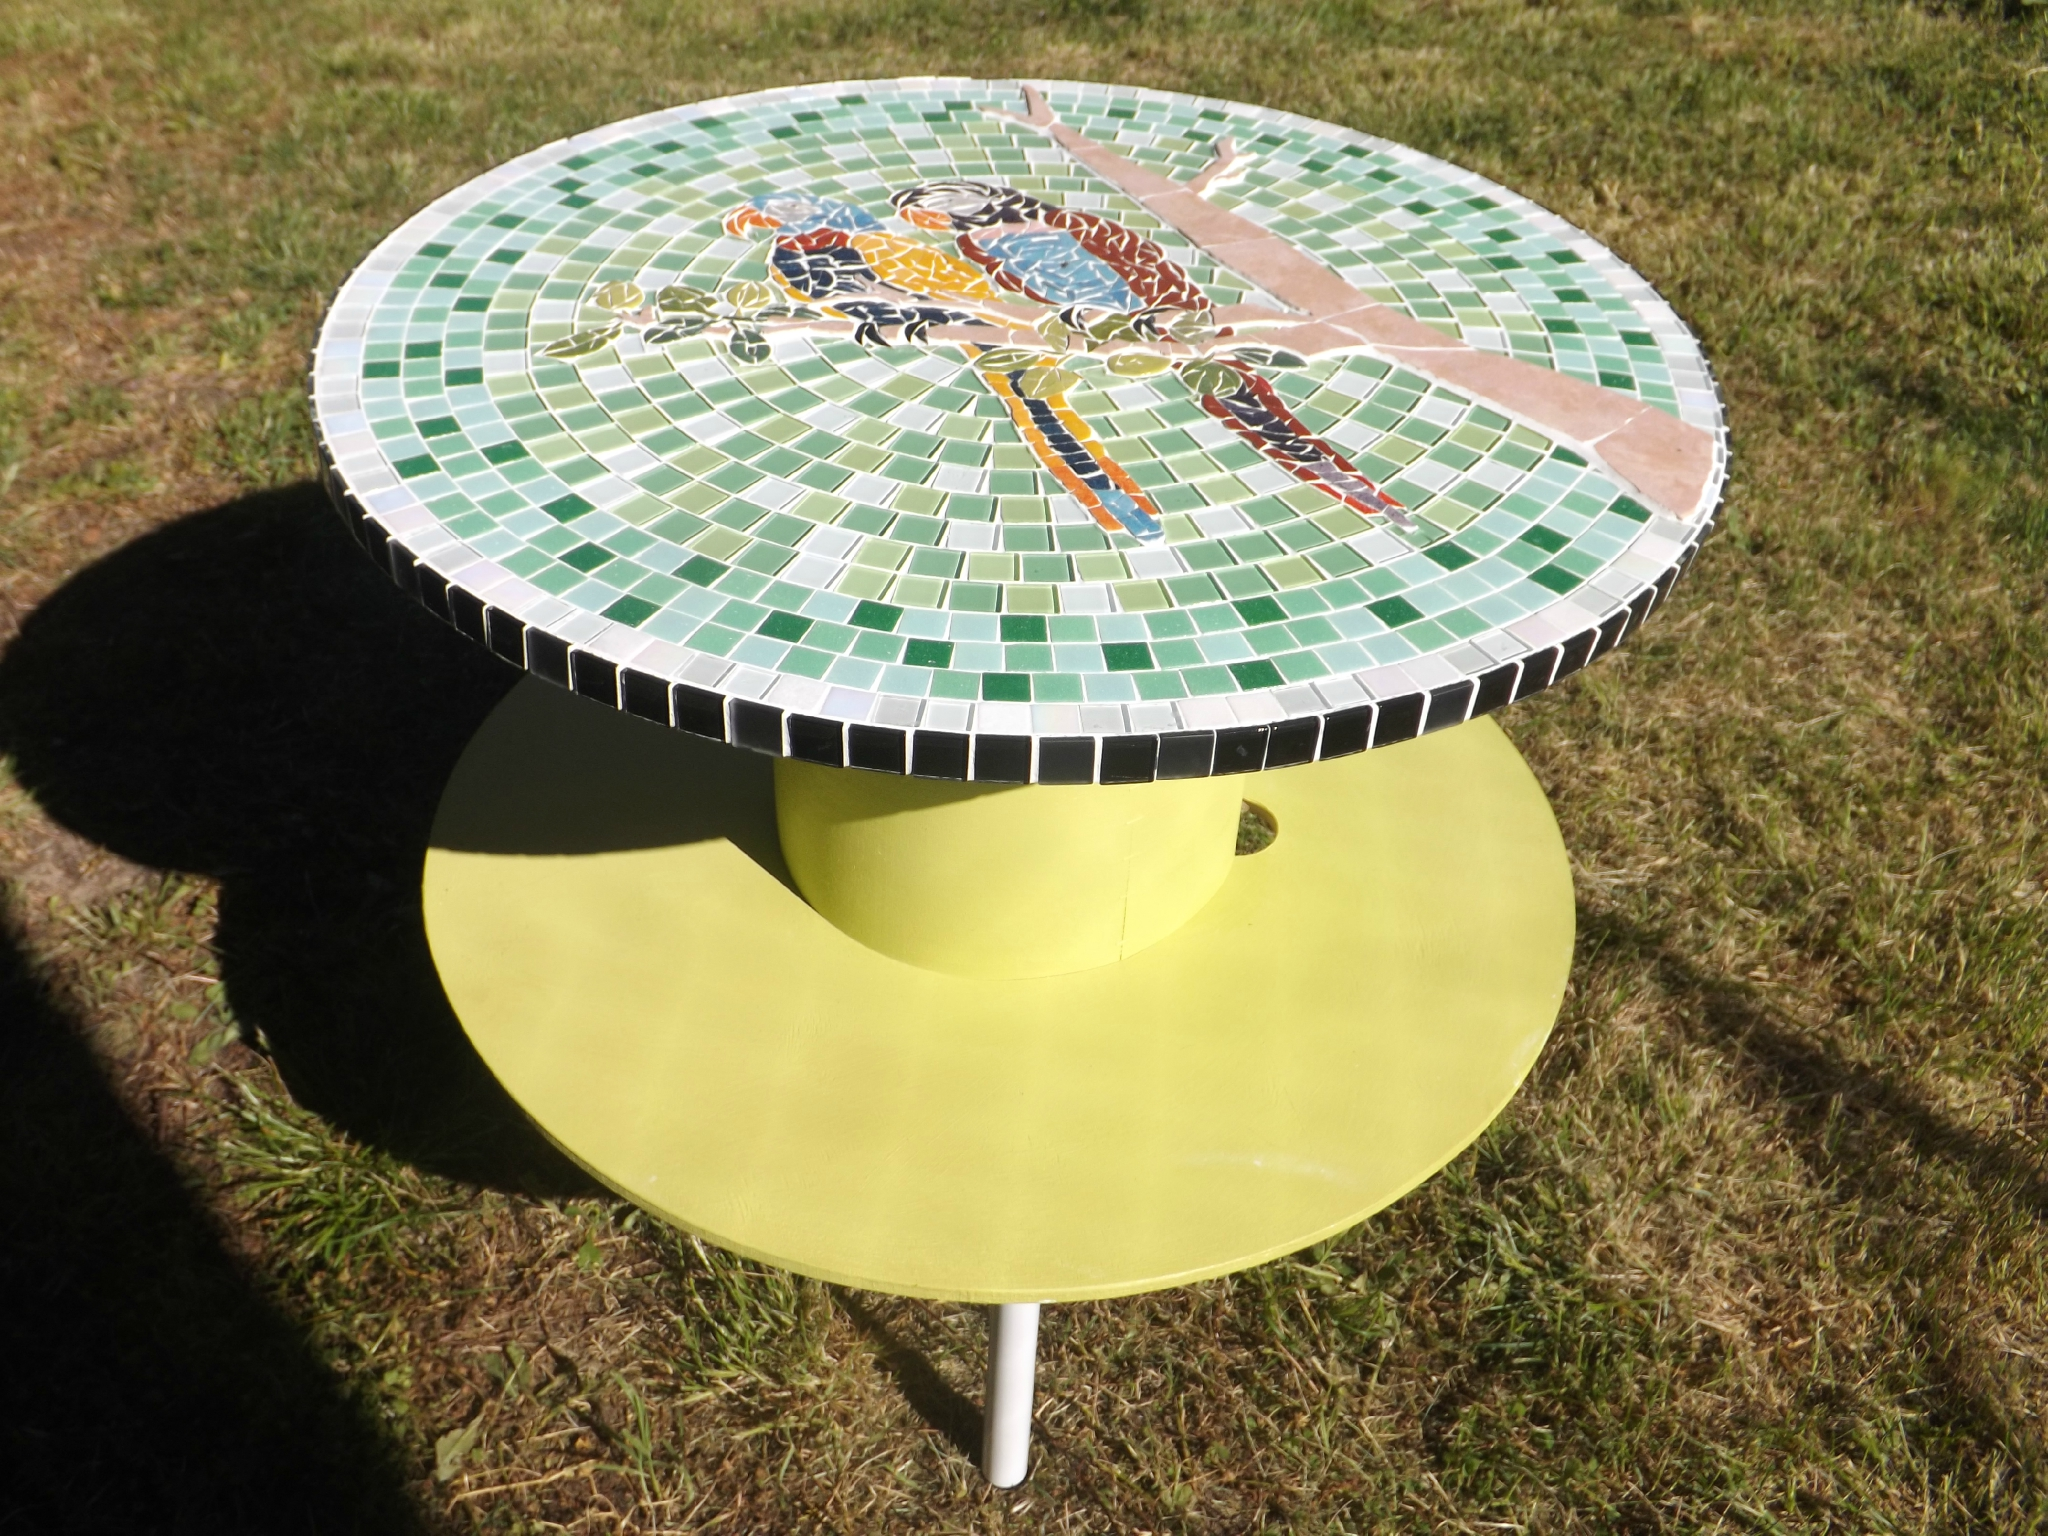 Table En Mosaique Realisee Sur Un Touret Les Perroquets